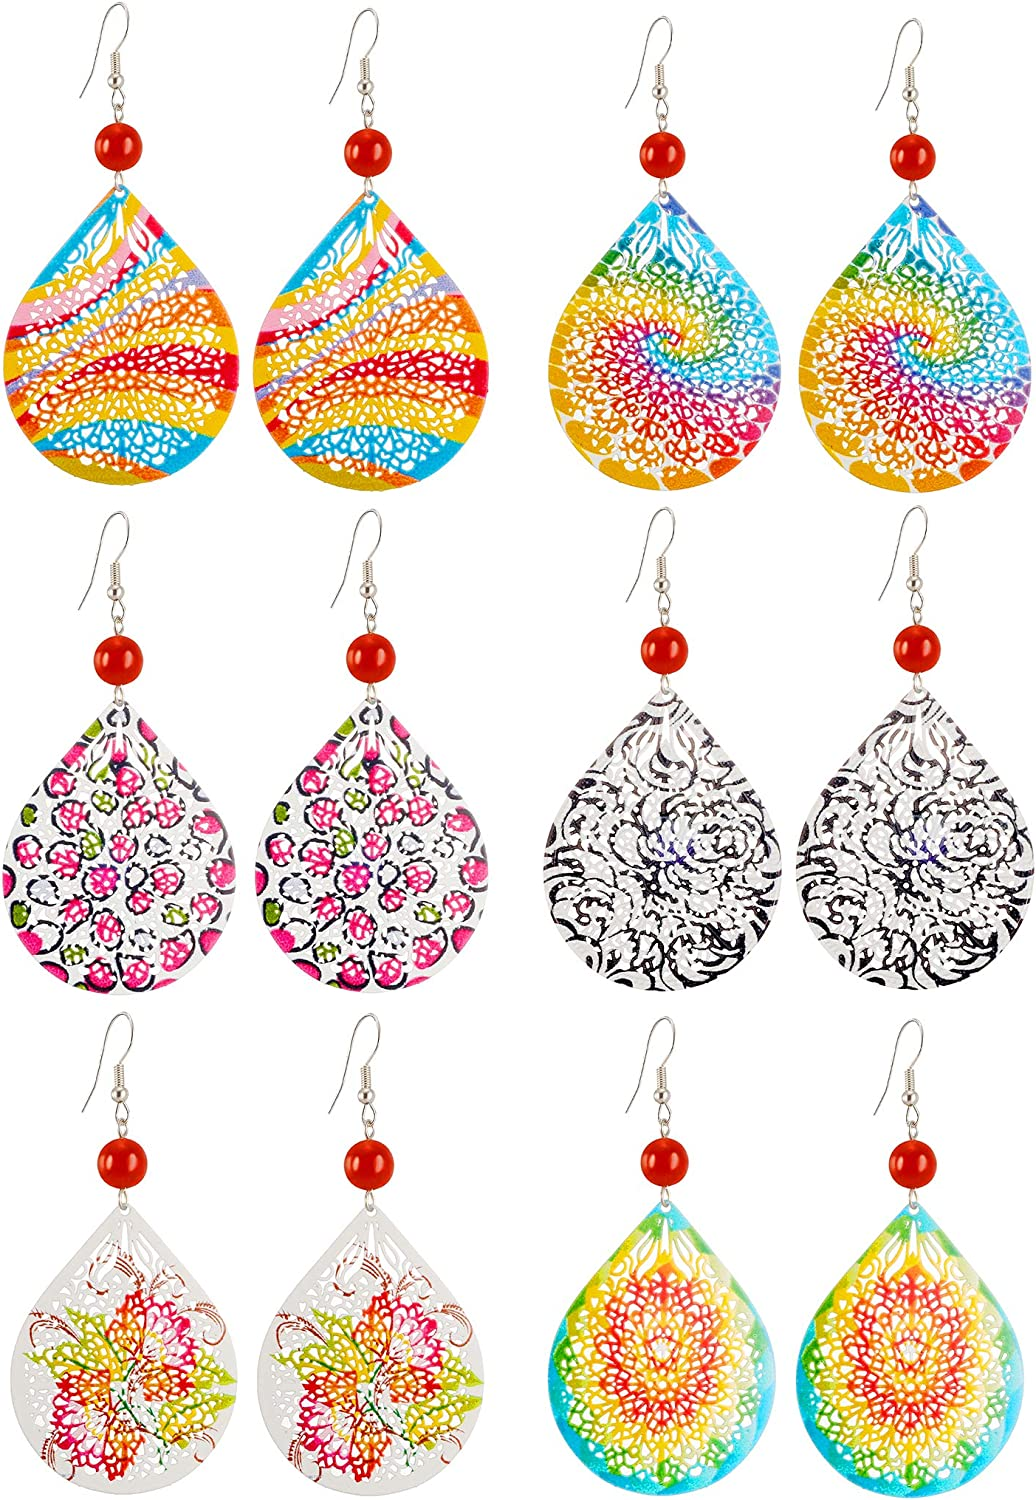 6 Paris Filigree Dangle Earrings for Women Fashion -Metal Hollow Earrings Set Cute Earring for Teens - Statement Earrings with Unique Design Bright Colors